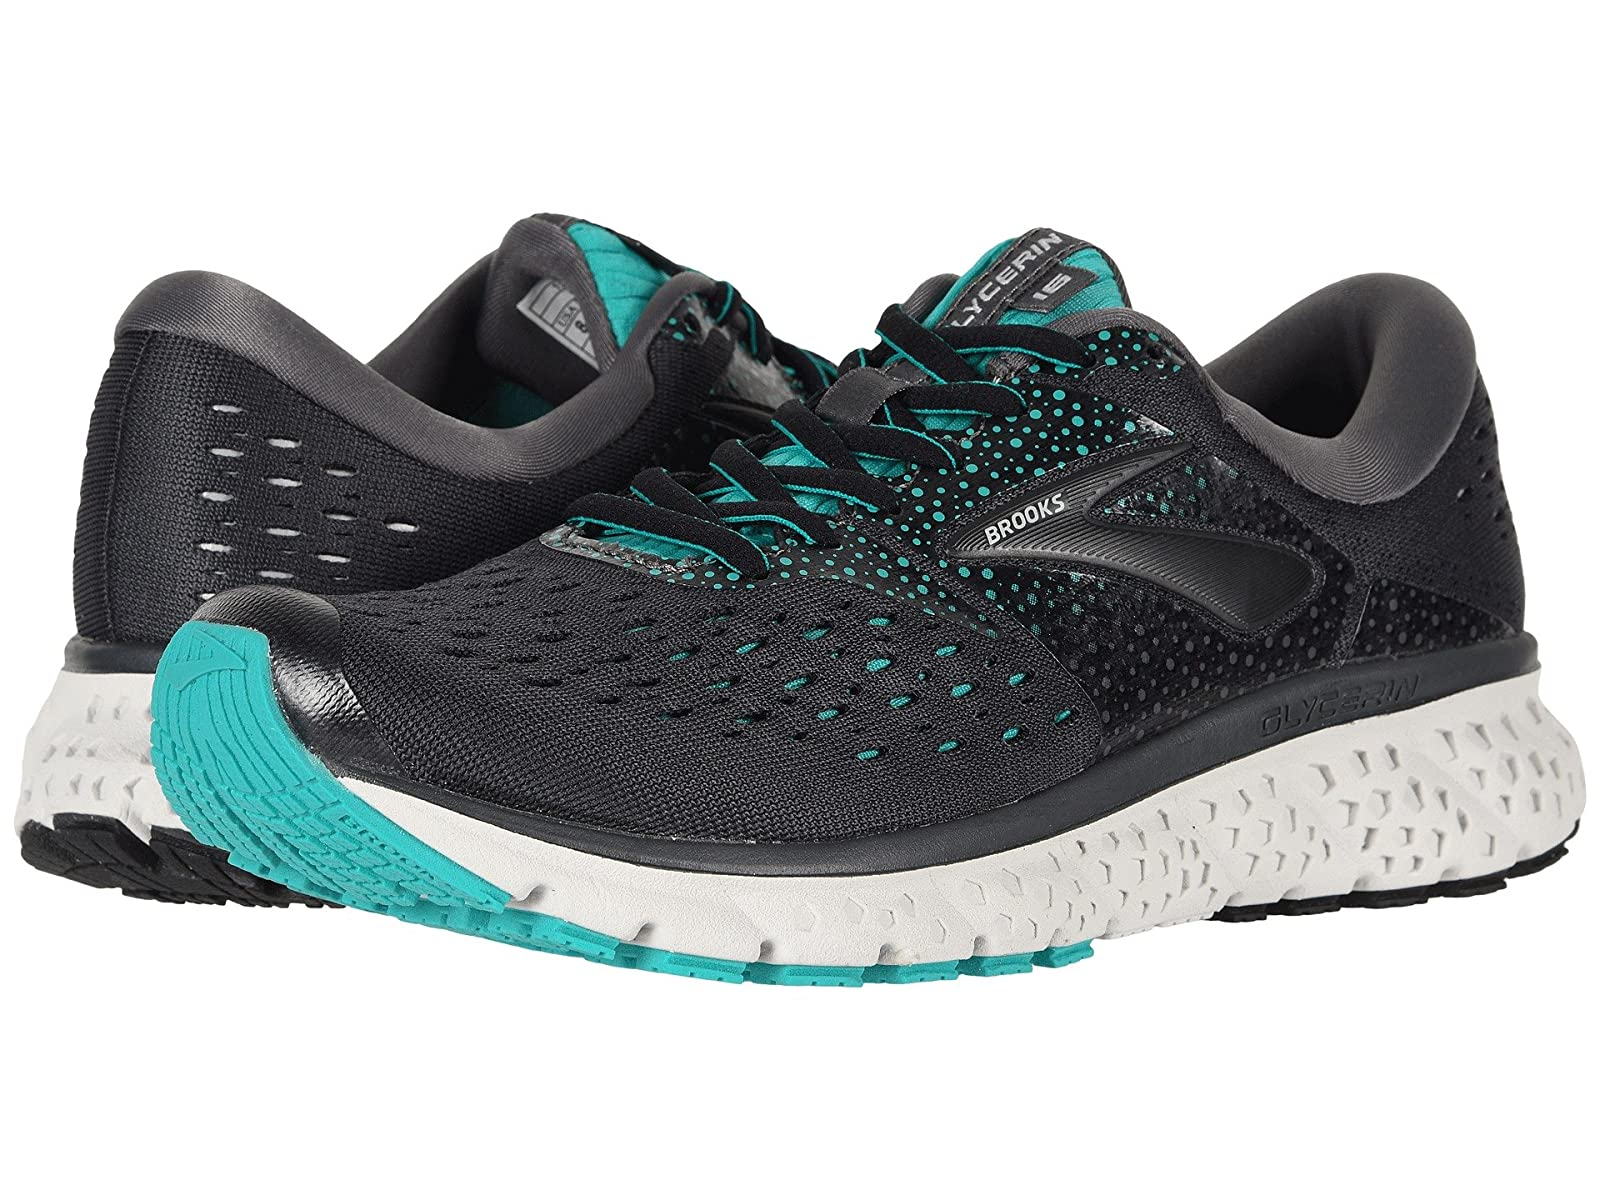 Brooks Glycerin 16Atmospheric grades have affordable shoes